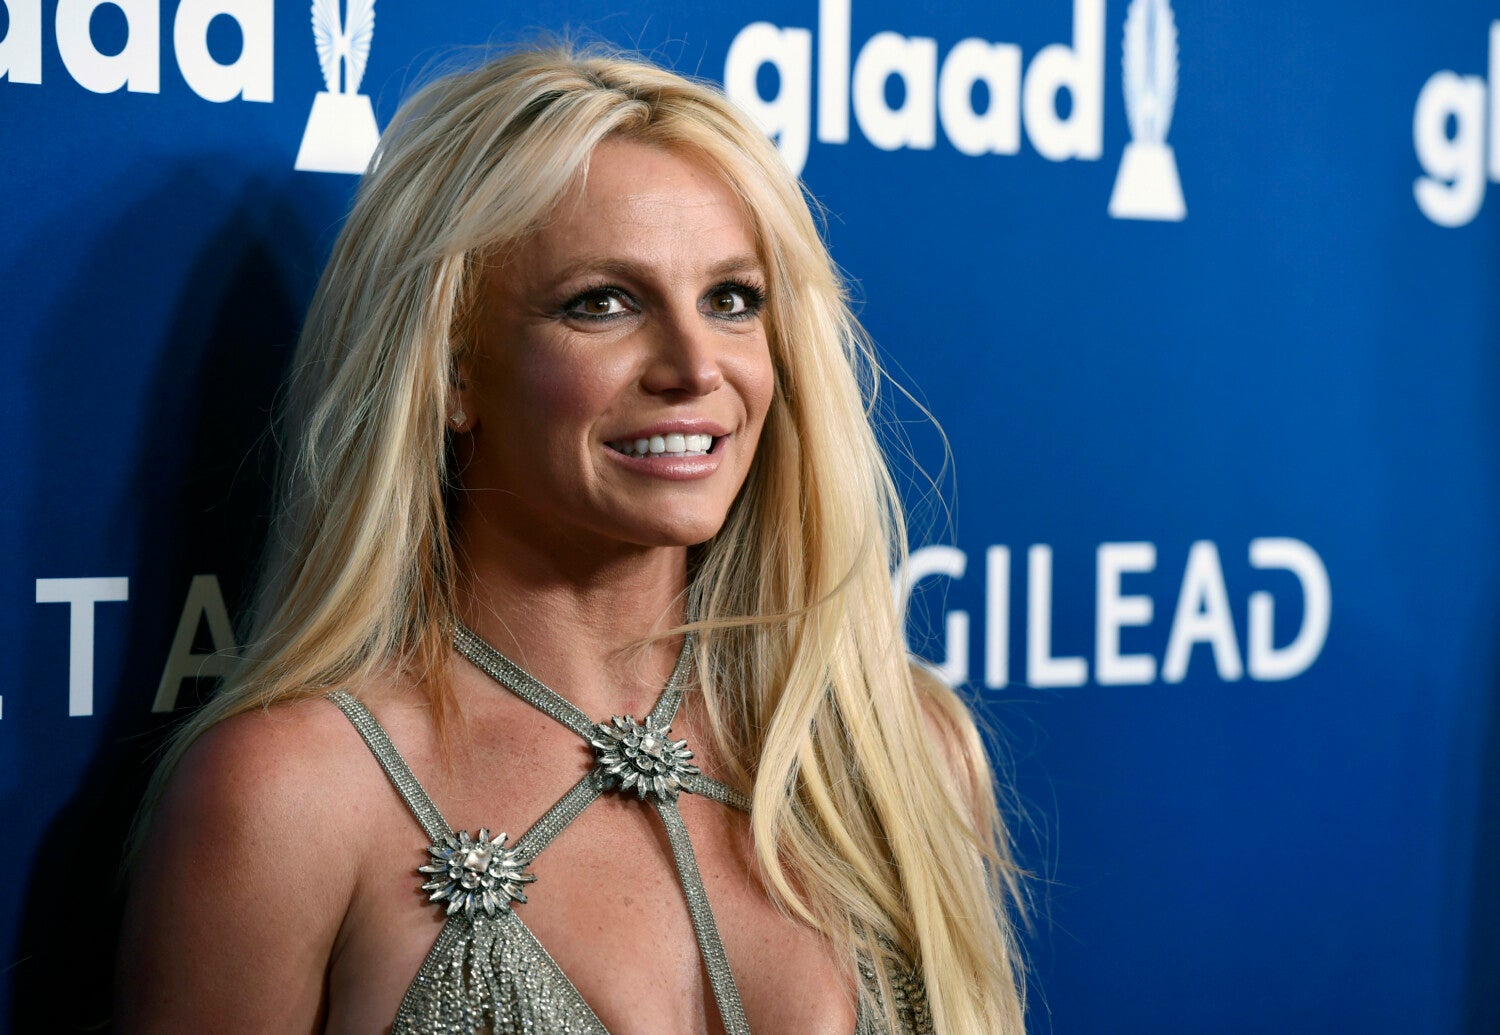 People-Britney-Spears_39031344